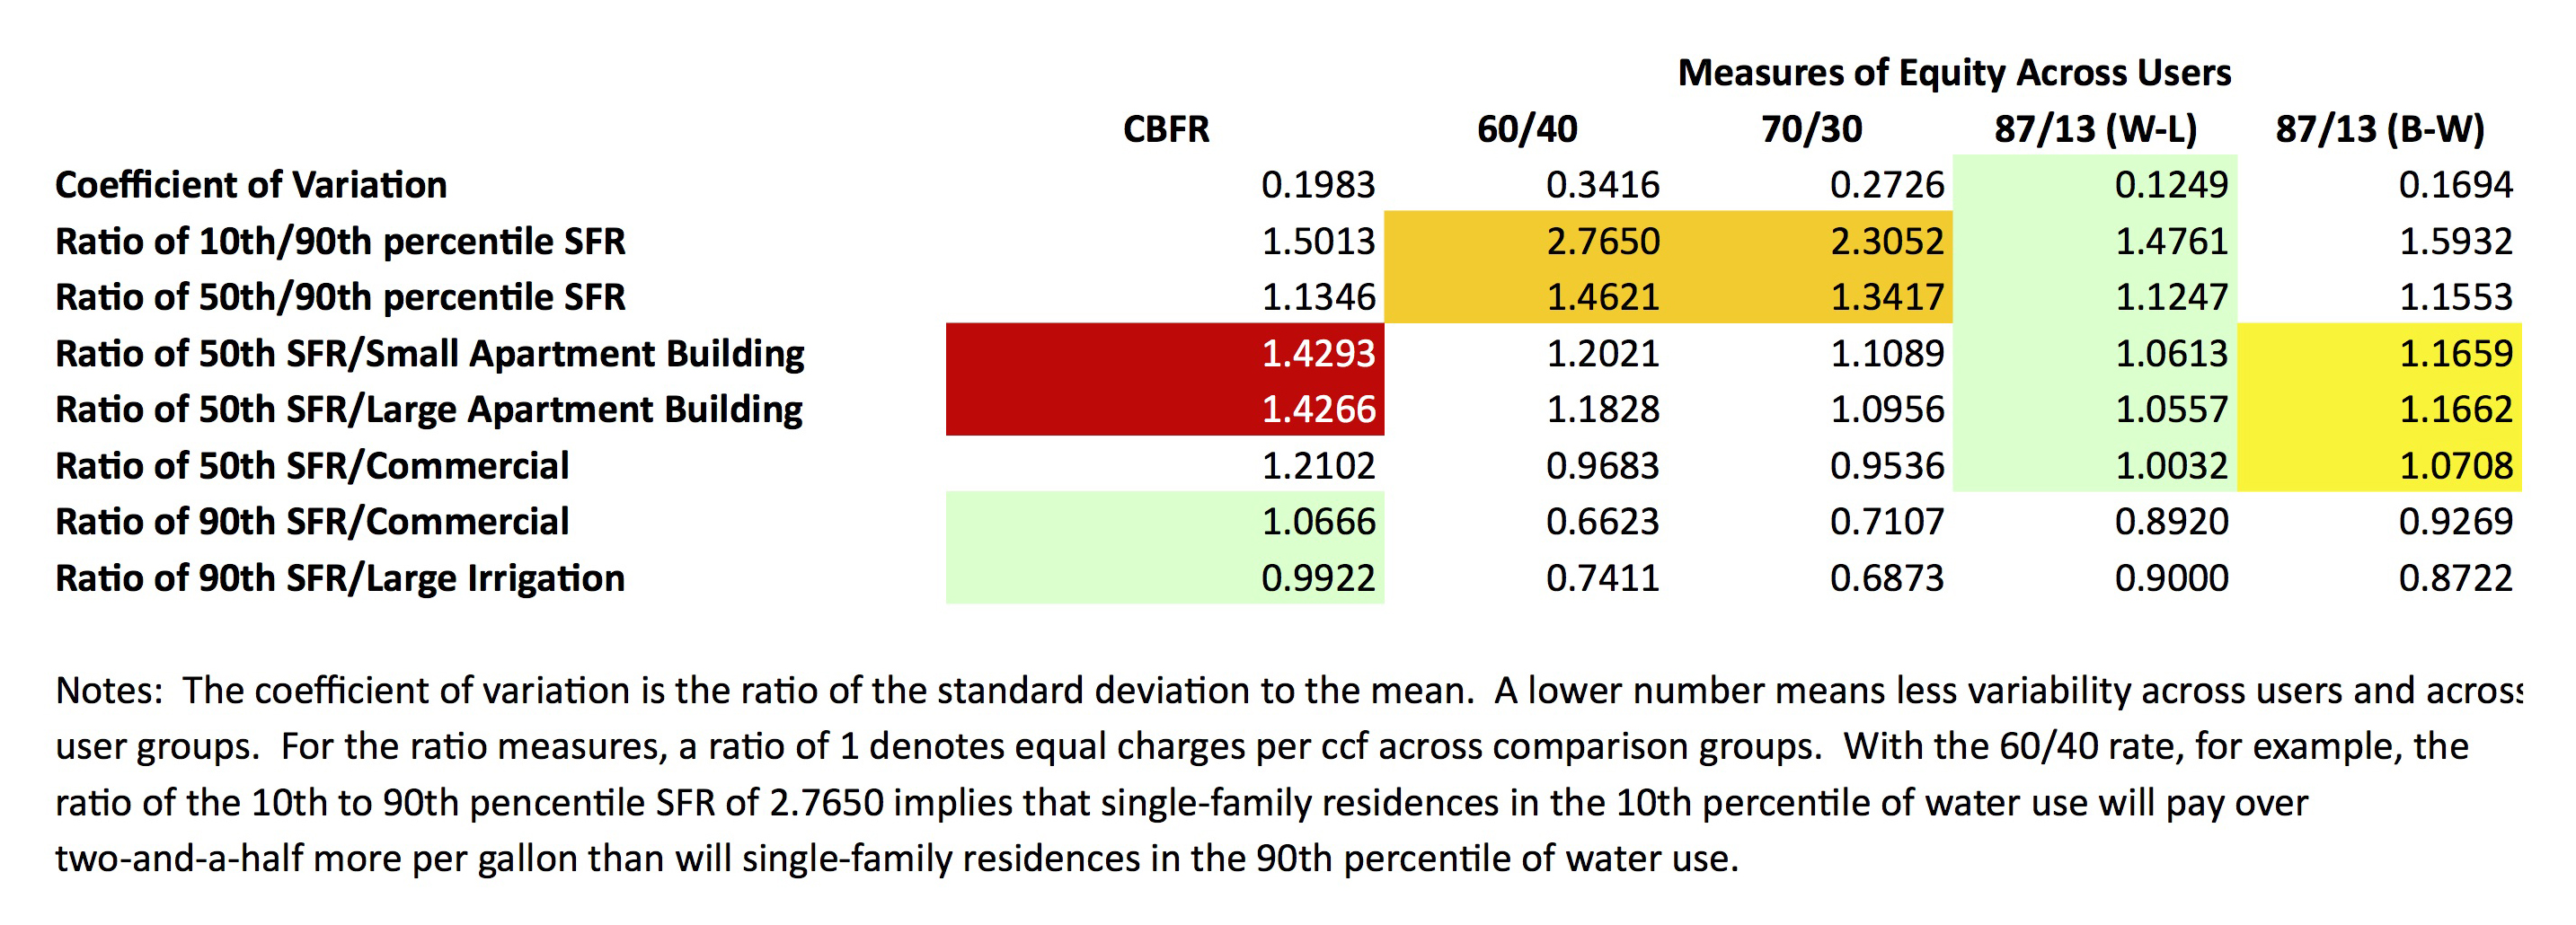 In the table above Equity is demonstrated when the ratio is closest to 1 •  Green shaded values are the closest to 1 •  Red shaded values are the ones that figured prominently in the Yes On Measure P arguments •  Orange shaded values are areas where traditional high fixed-fee rates create considerable inequity •  Yellow shaded values are areas in Staff's proposed rates where there are still equity improvement opportunities